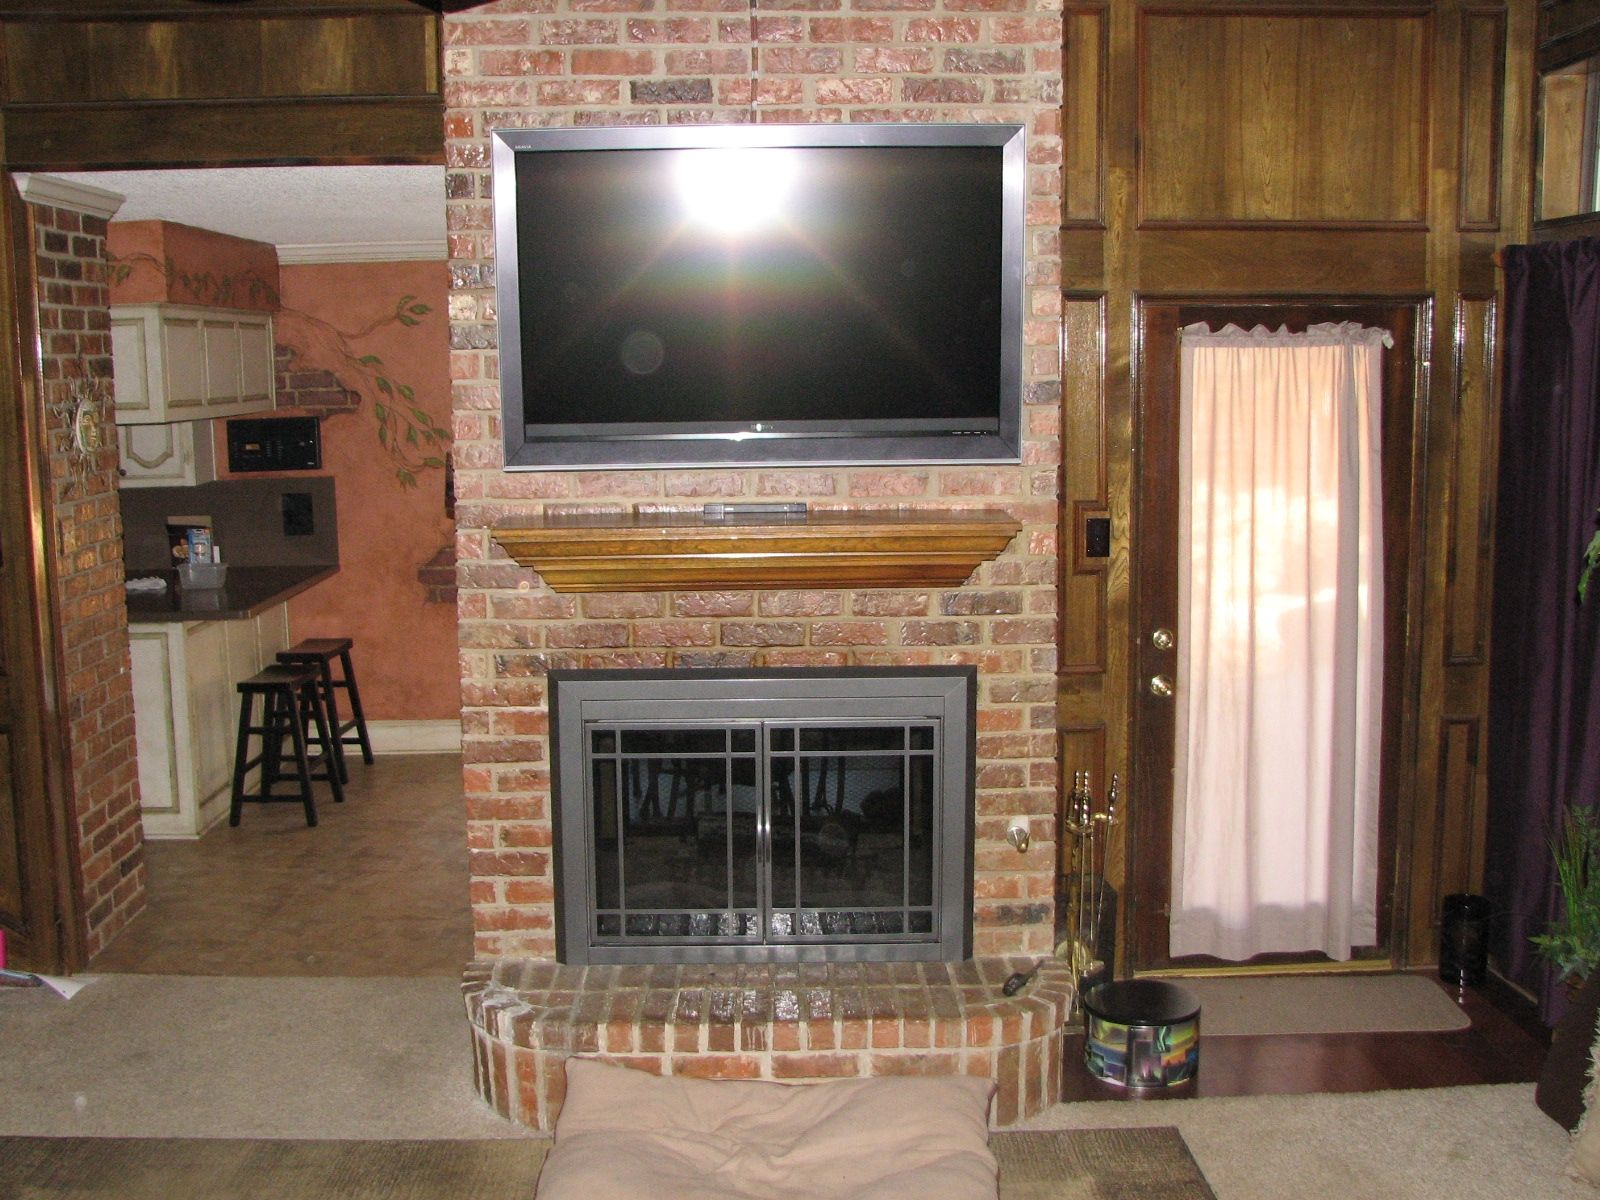 Ideas for mounting tv on brick wall umadepa pinterest